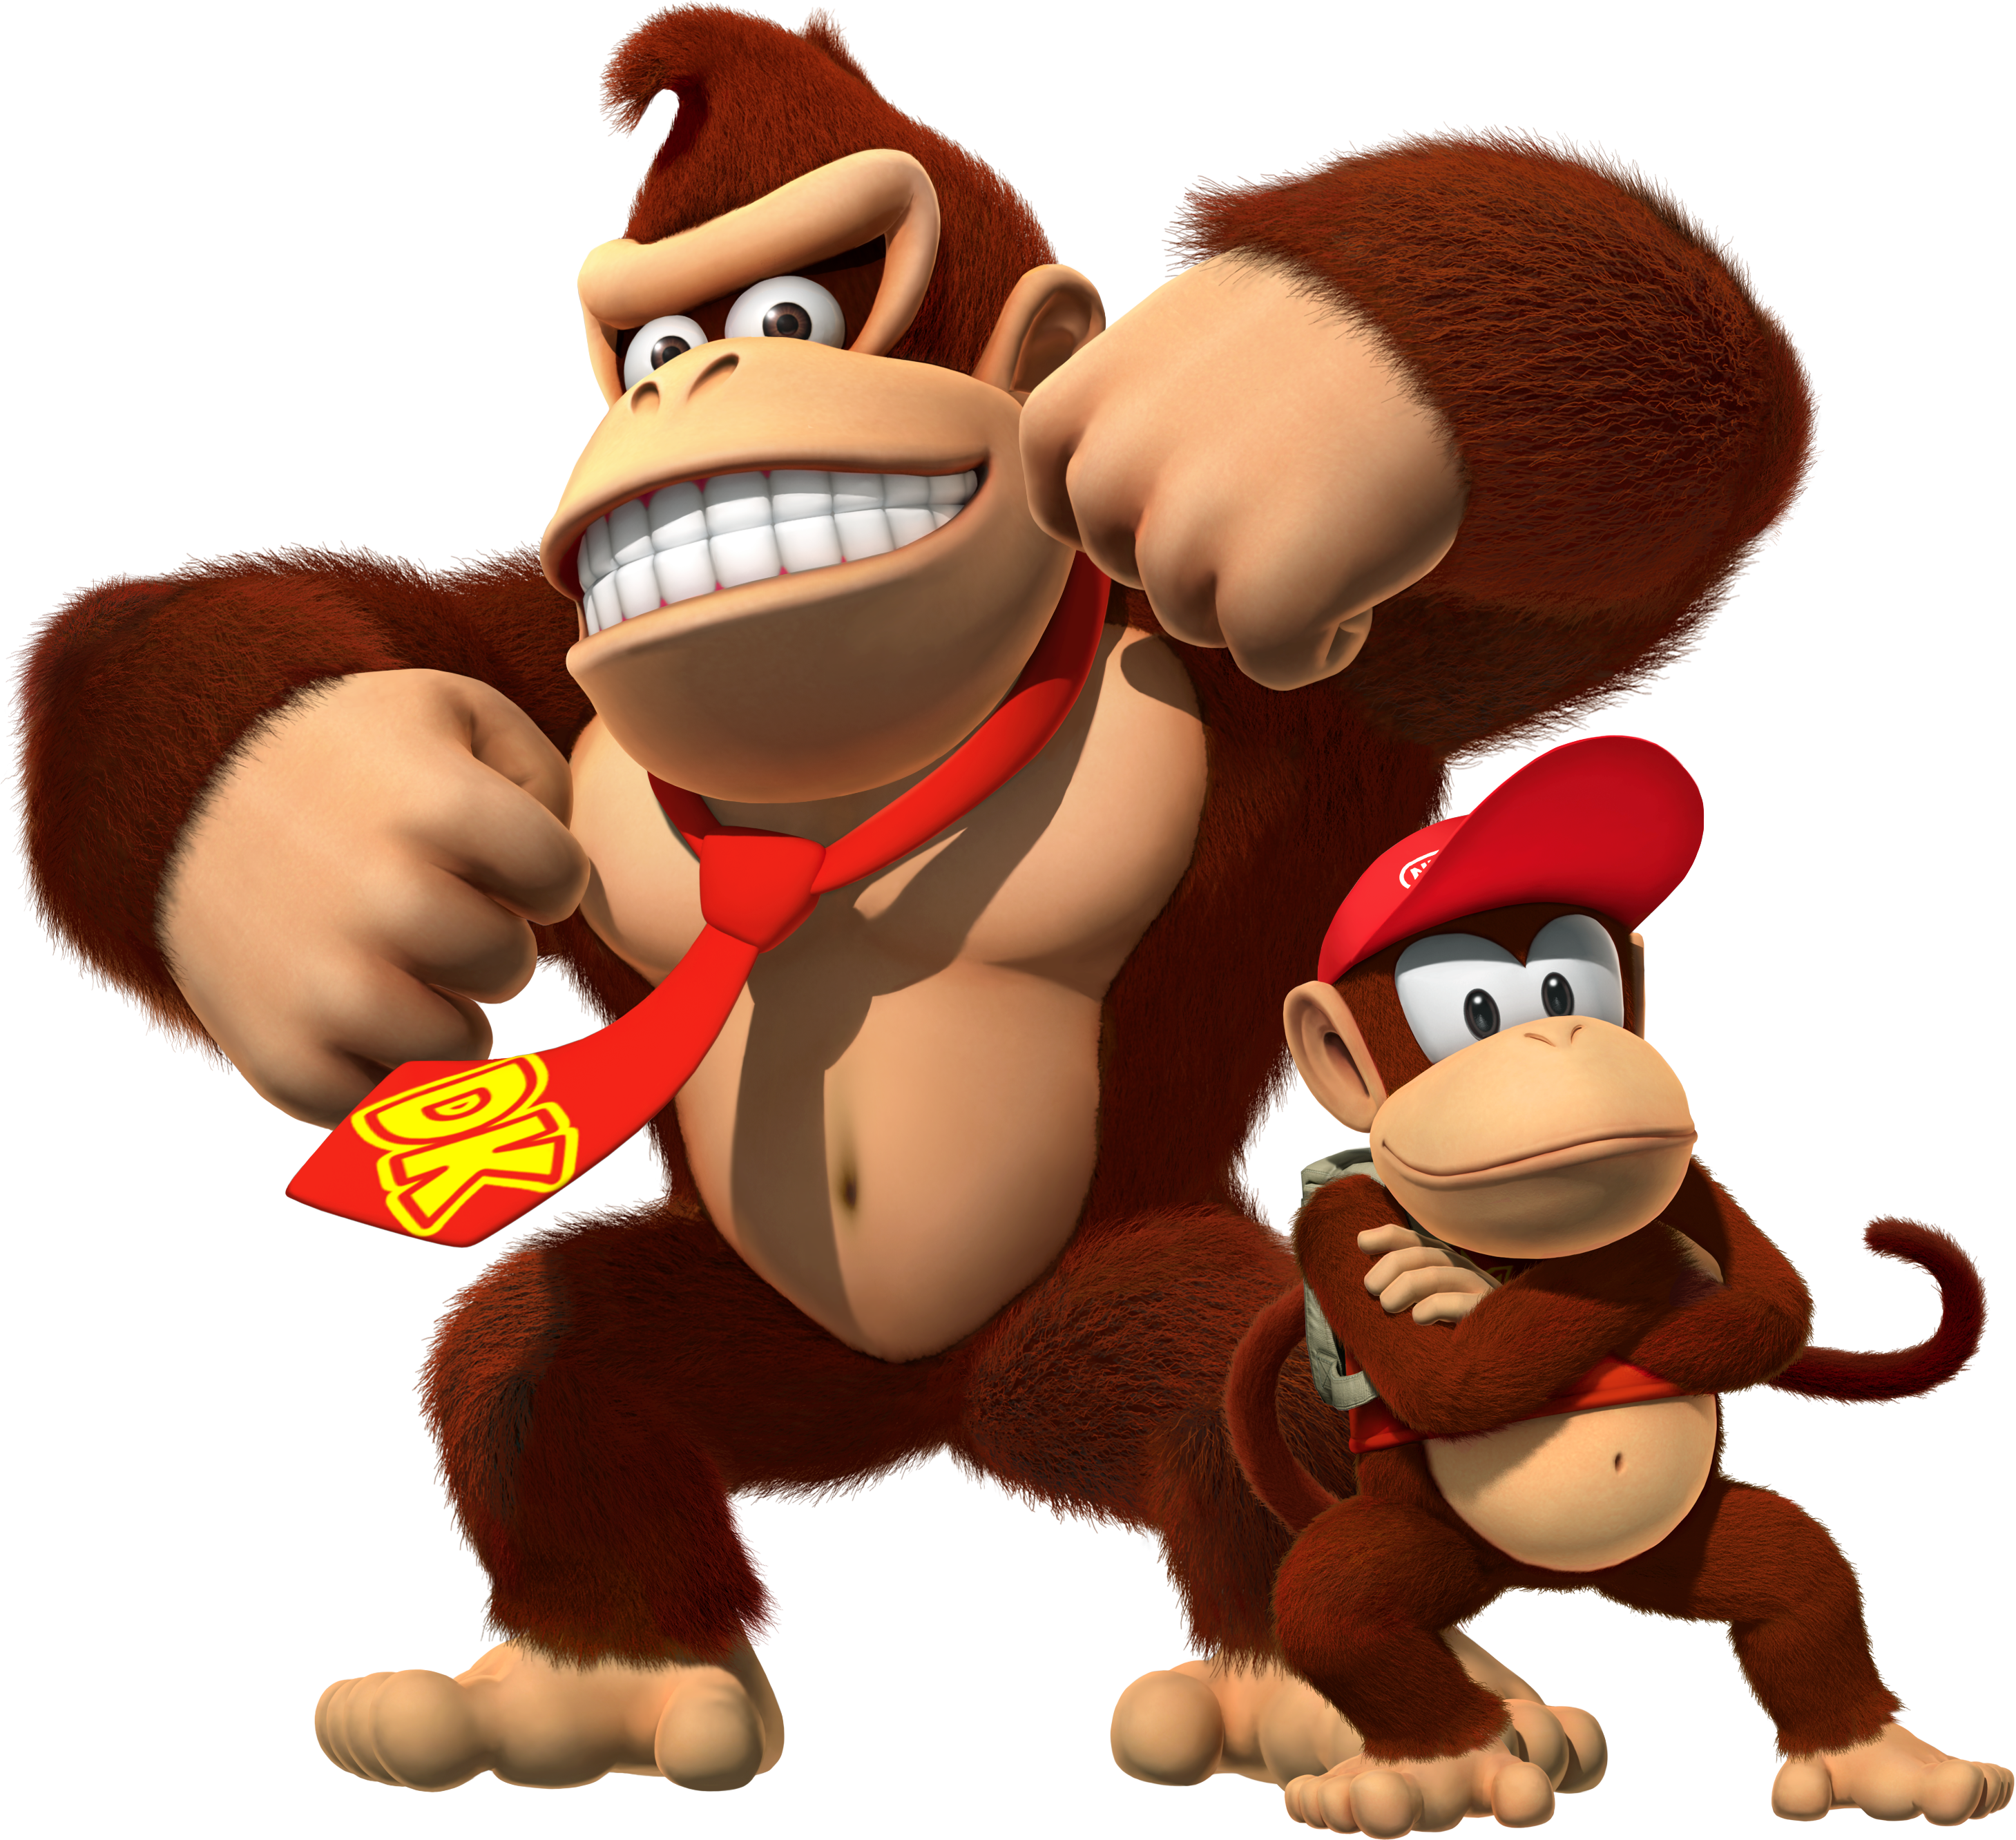 donkey kong country returns discussion dkc atlas forum. Black Bedroom Furniture Sets. Home Design Ideas